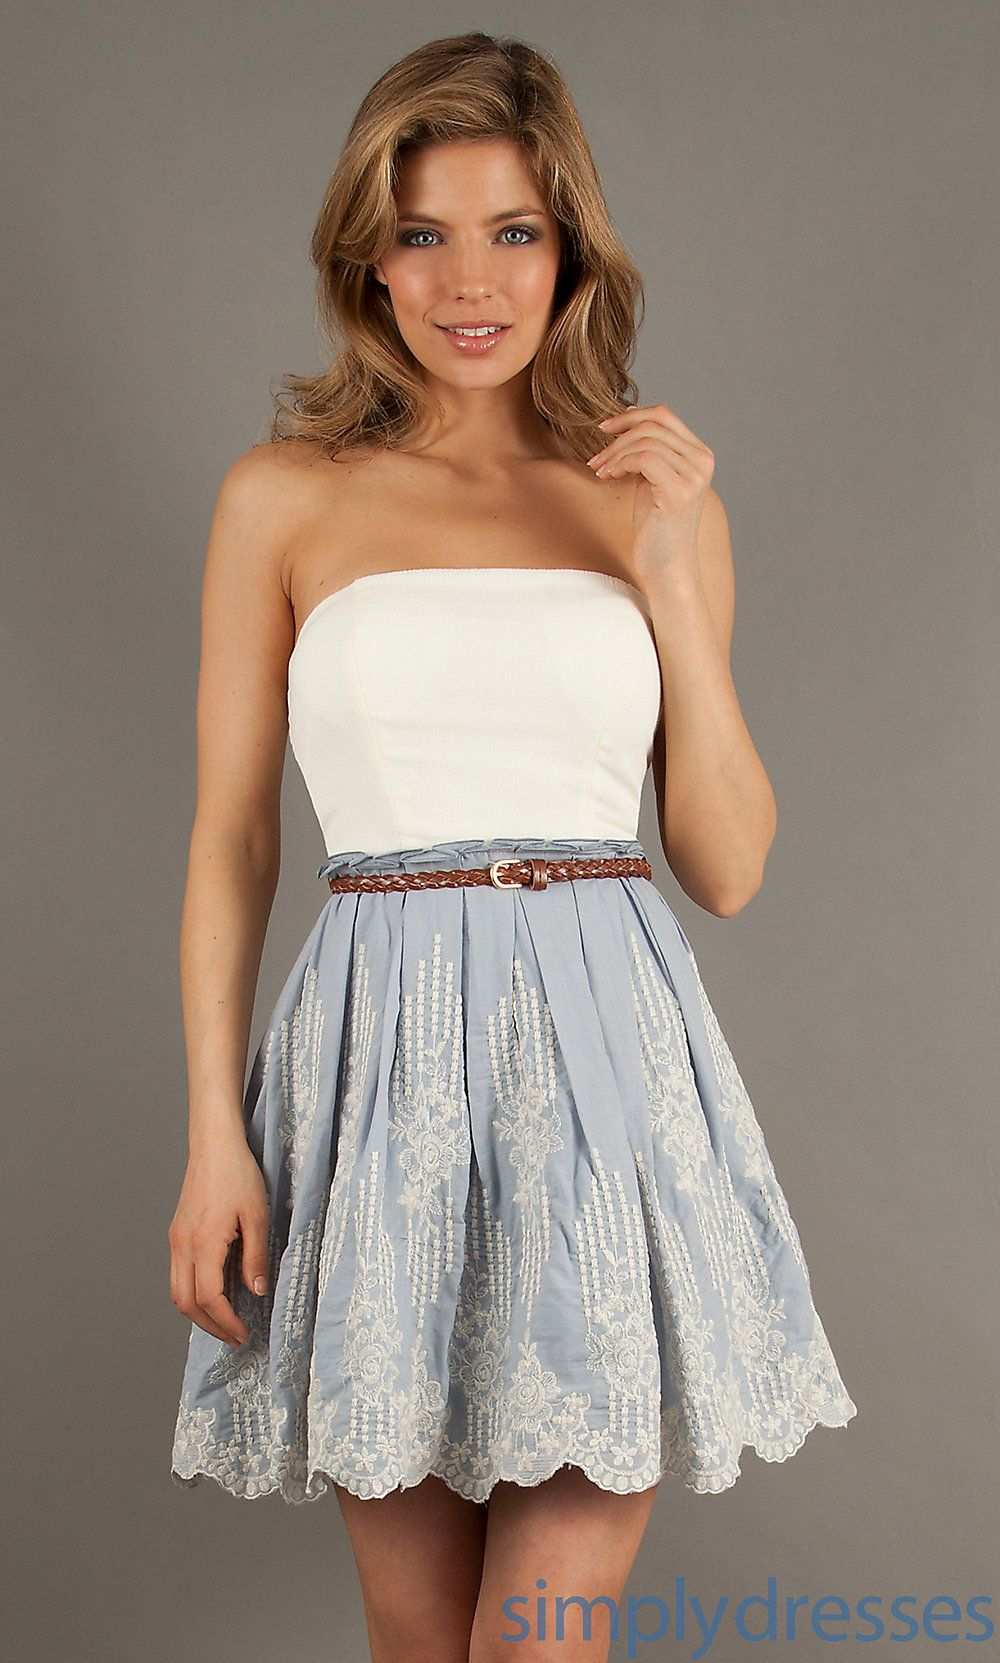 Dresses Formal Prom Dresses Evening Wear Short Strapless Casual Dress  Shorts Clothes and